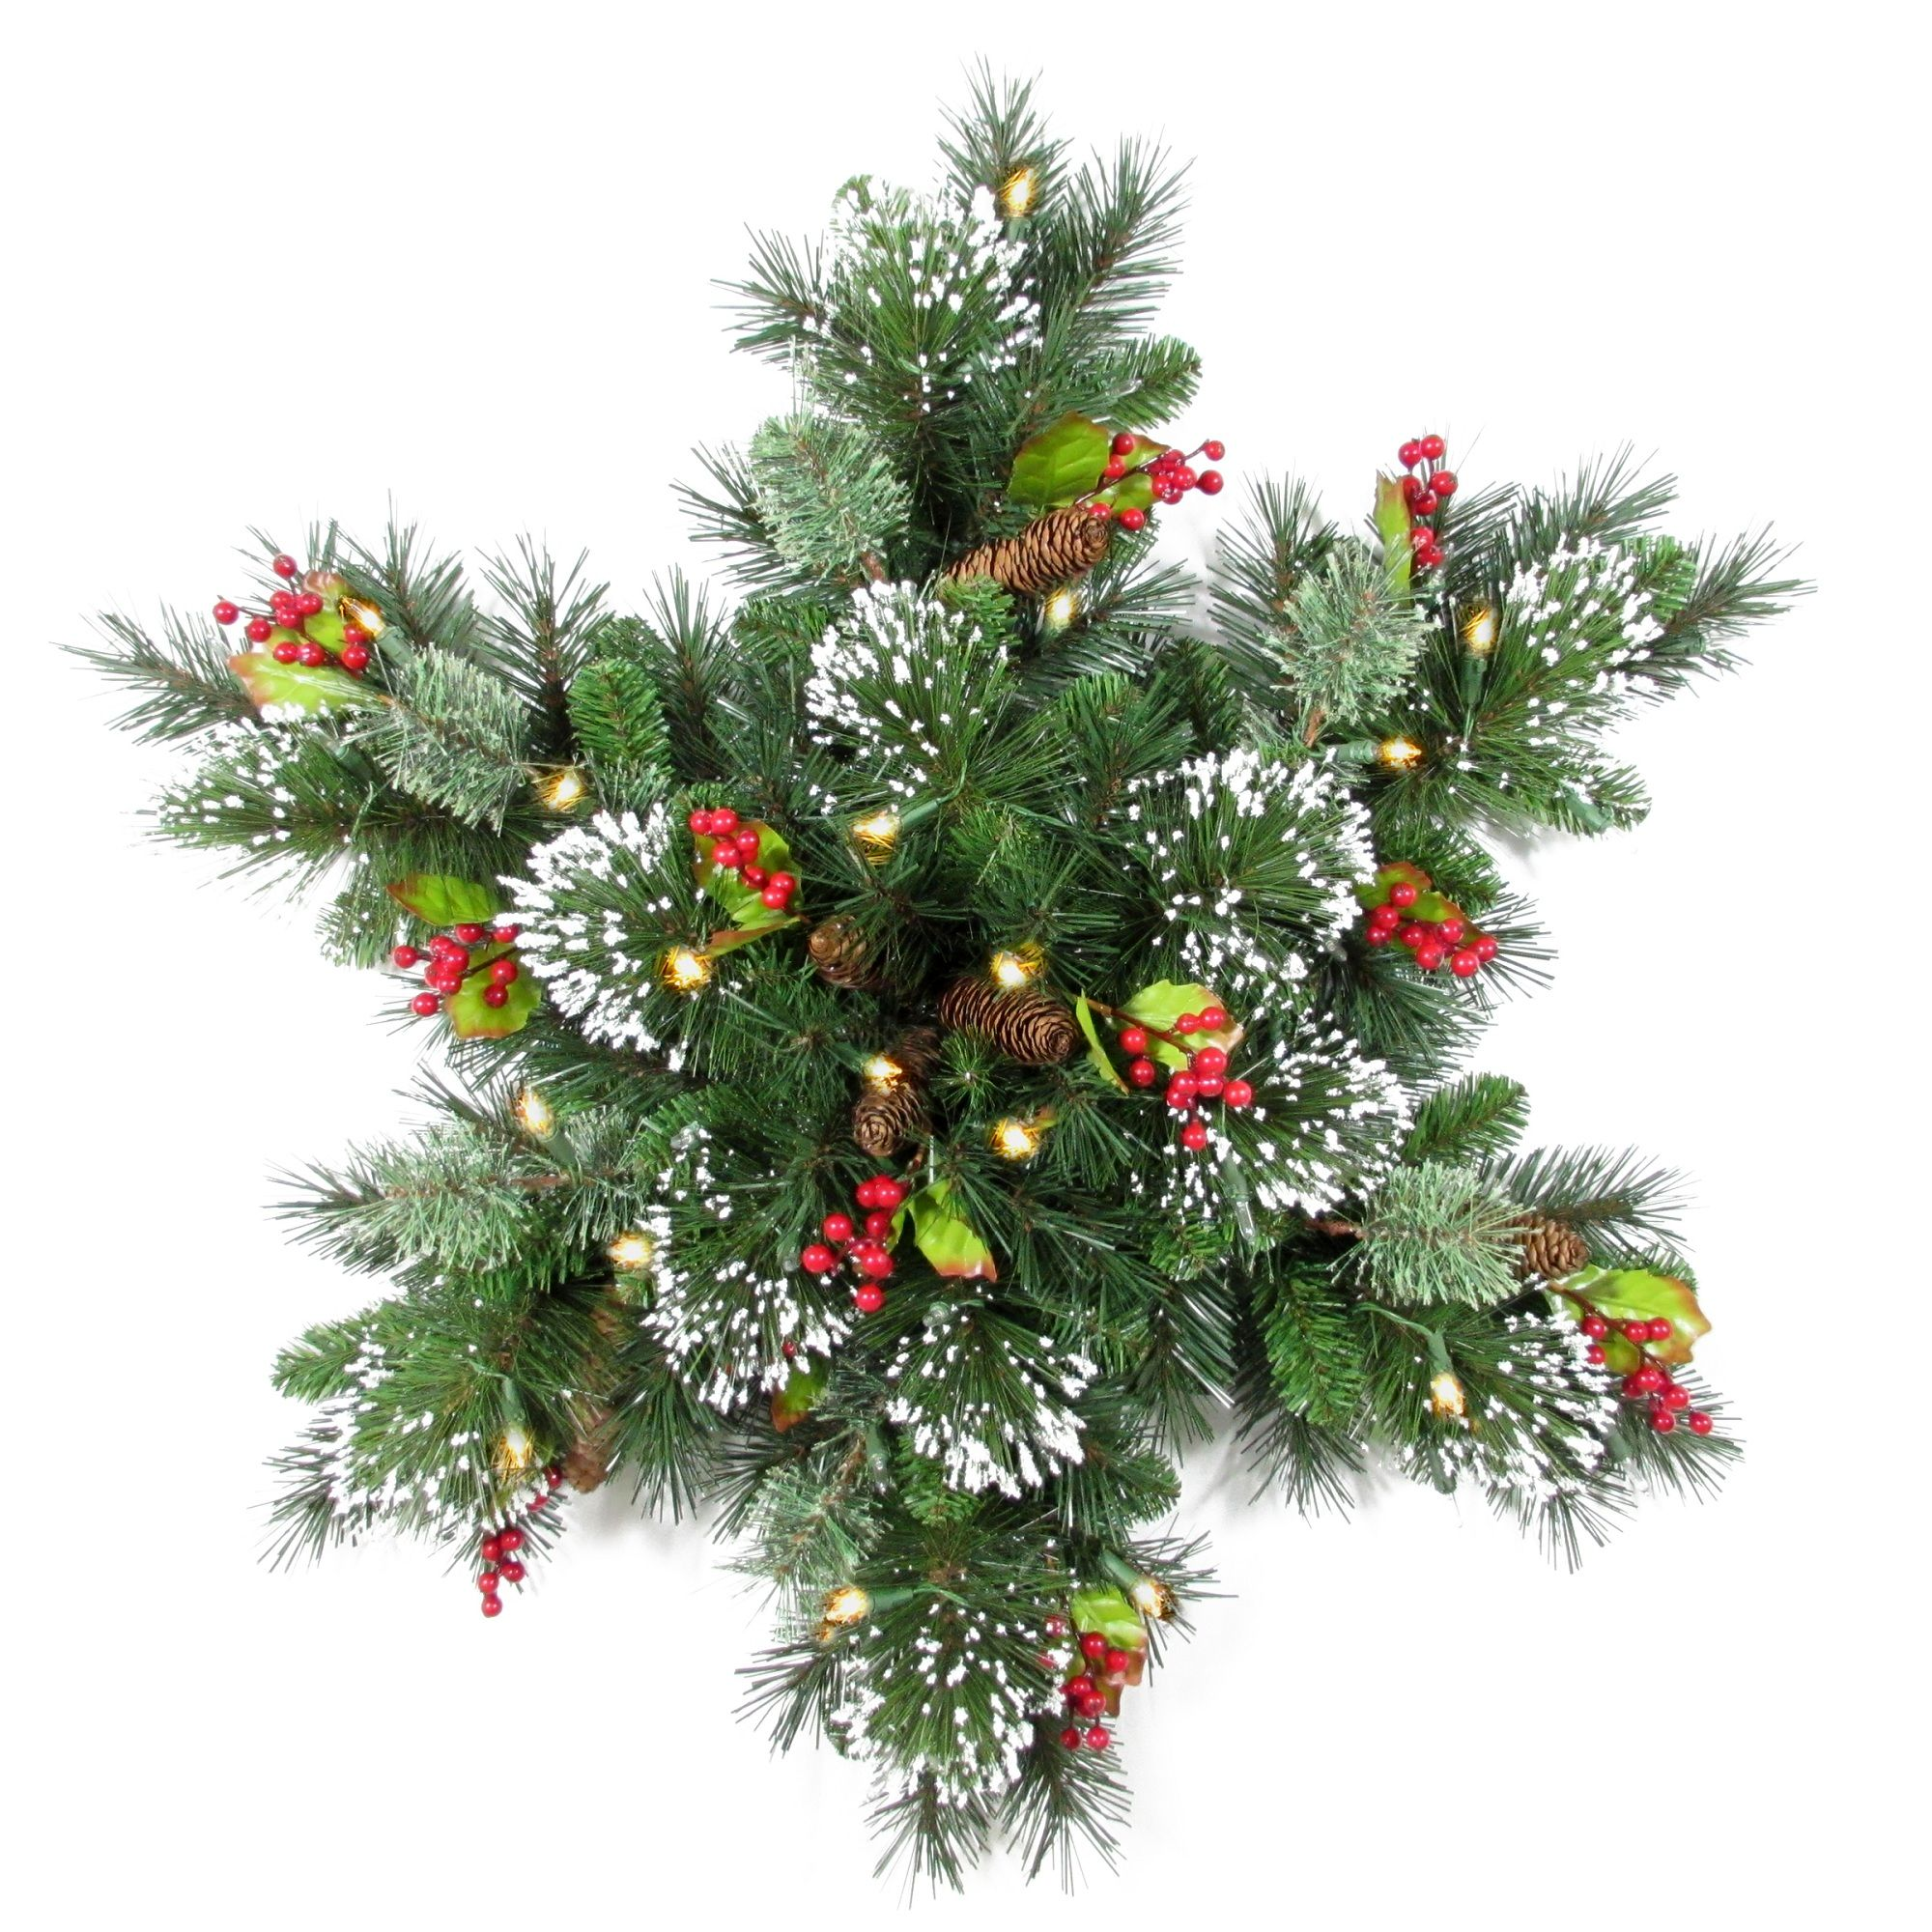 Pre Lit 32 Wintry Pine R Snowflake Artificial Christmas Wreath 32 Inch Battery Operated Warm White Clear Led Lights Artificial Christmas Wreaths Snowflake Decorations Christmas Swags